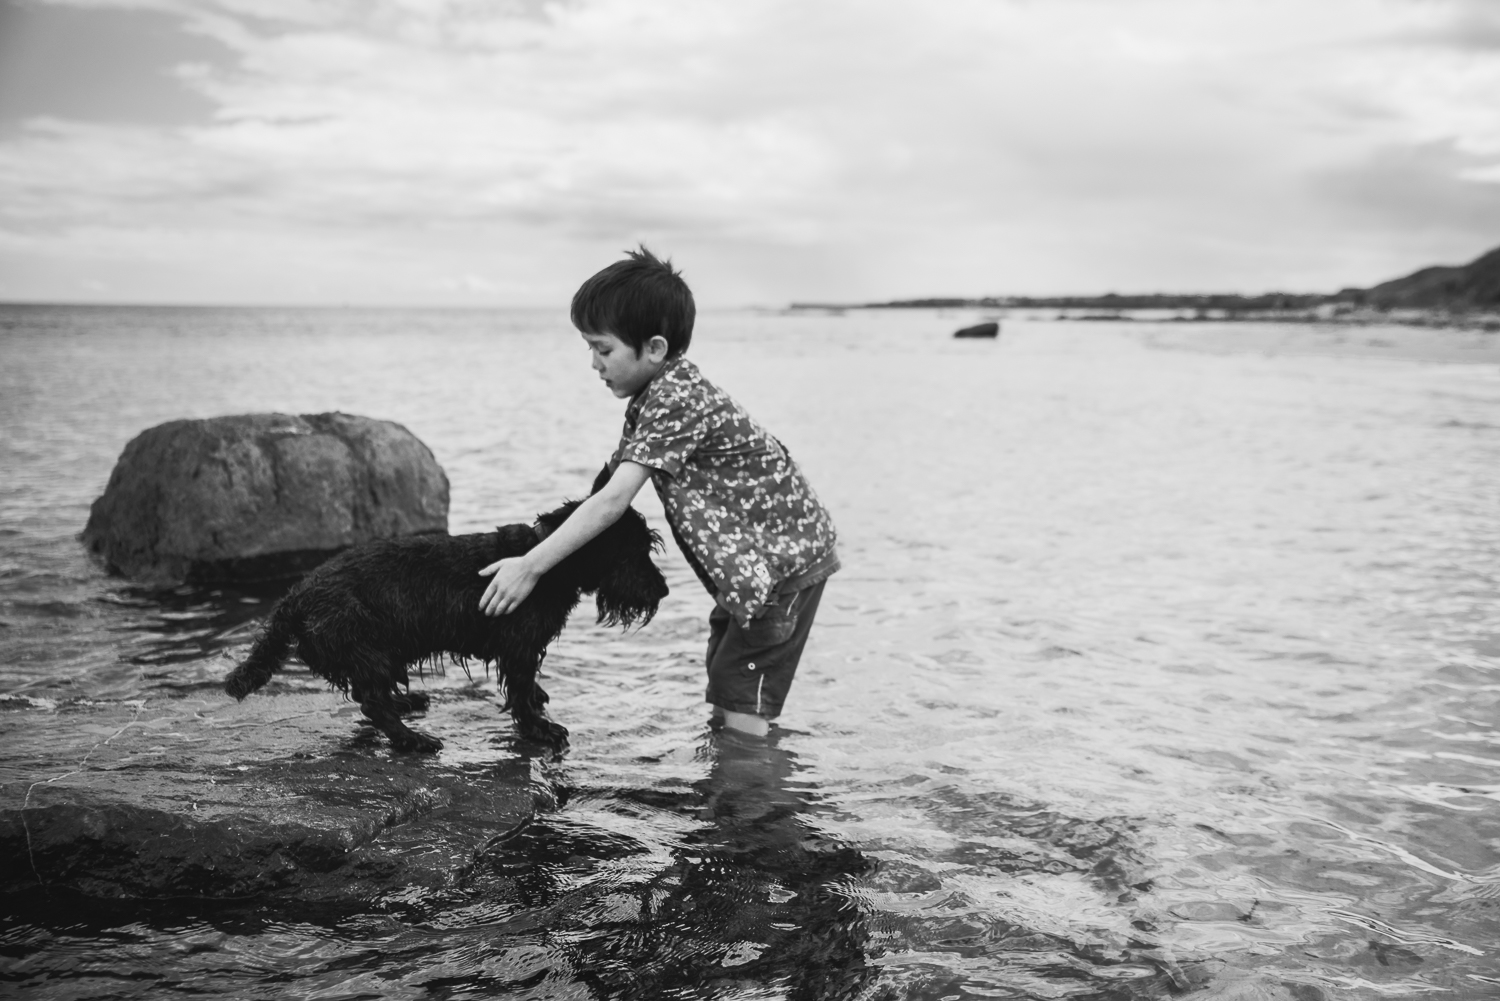 Black and white photograph of a boy and his dog in the sea